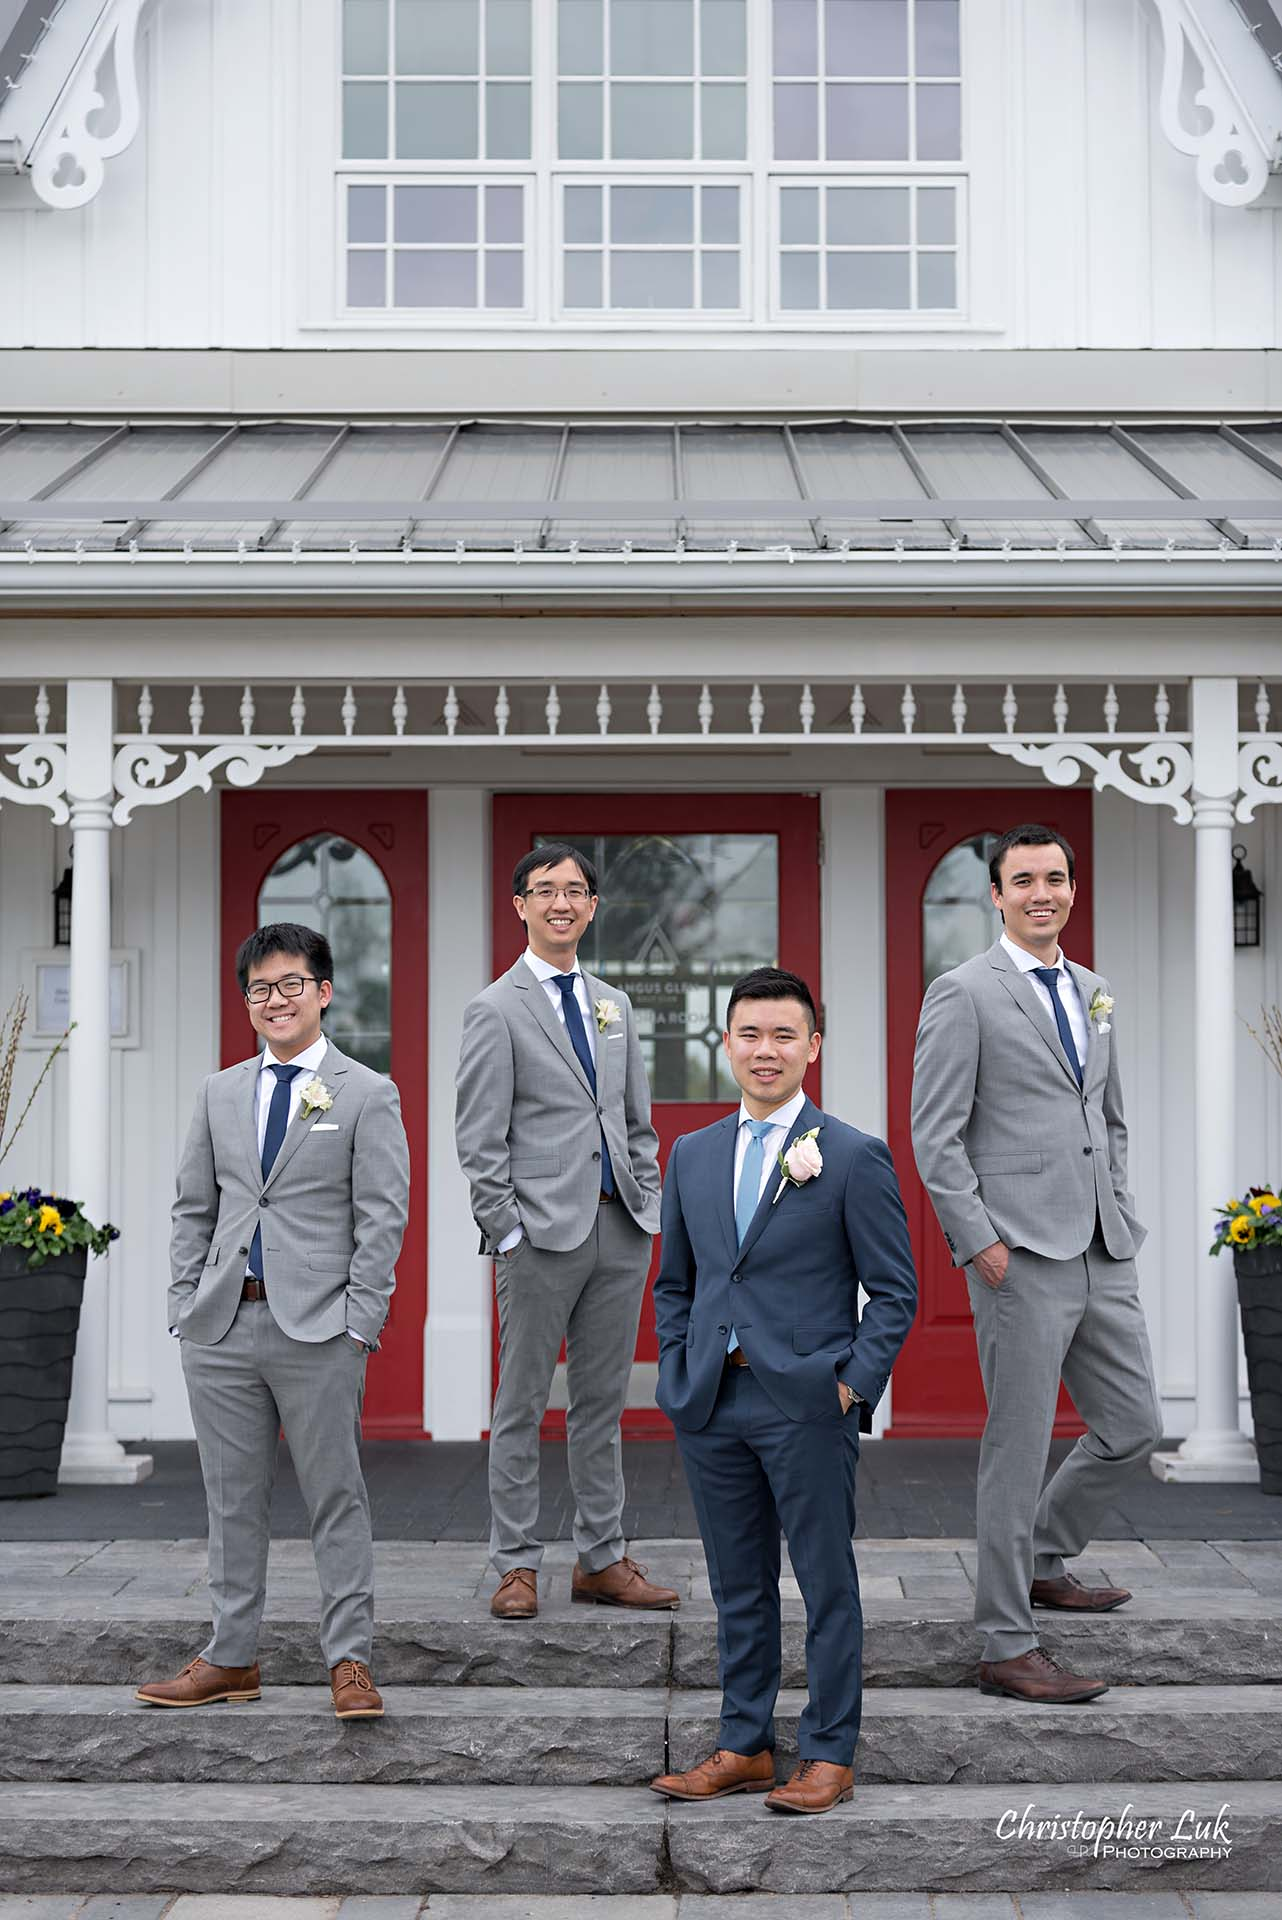 Christopher Luk Toronto Wedding Photographer Angus Glen Golf Club Markham Victoria Room Kennedy Loft Main Historic Estate Building Entrance Bridal Party Best Man Groomsmen Together Natural Candid Photojournalistic Cool Boy Band Album